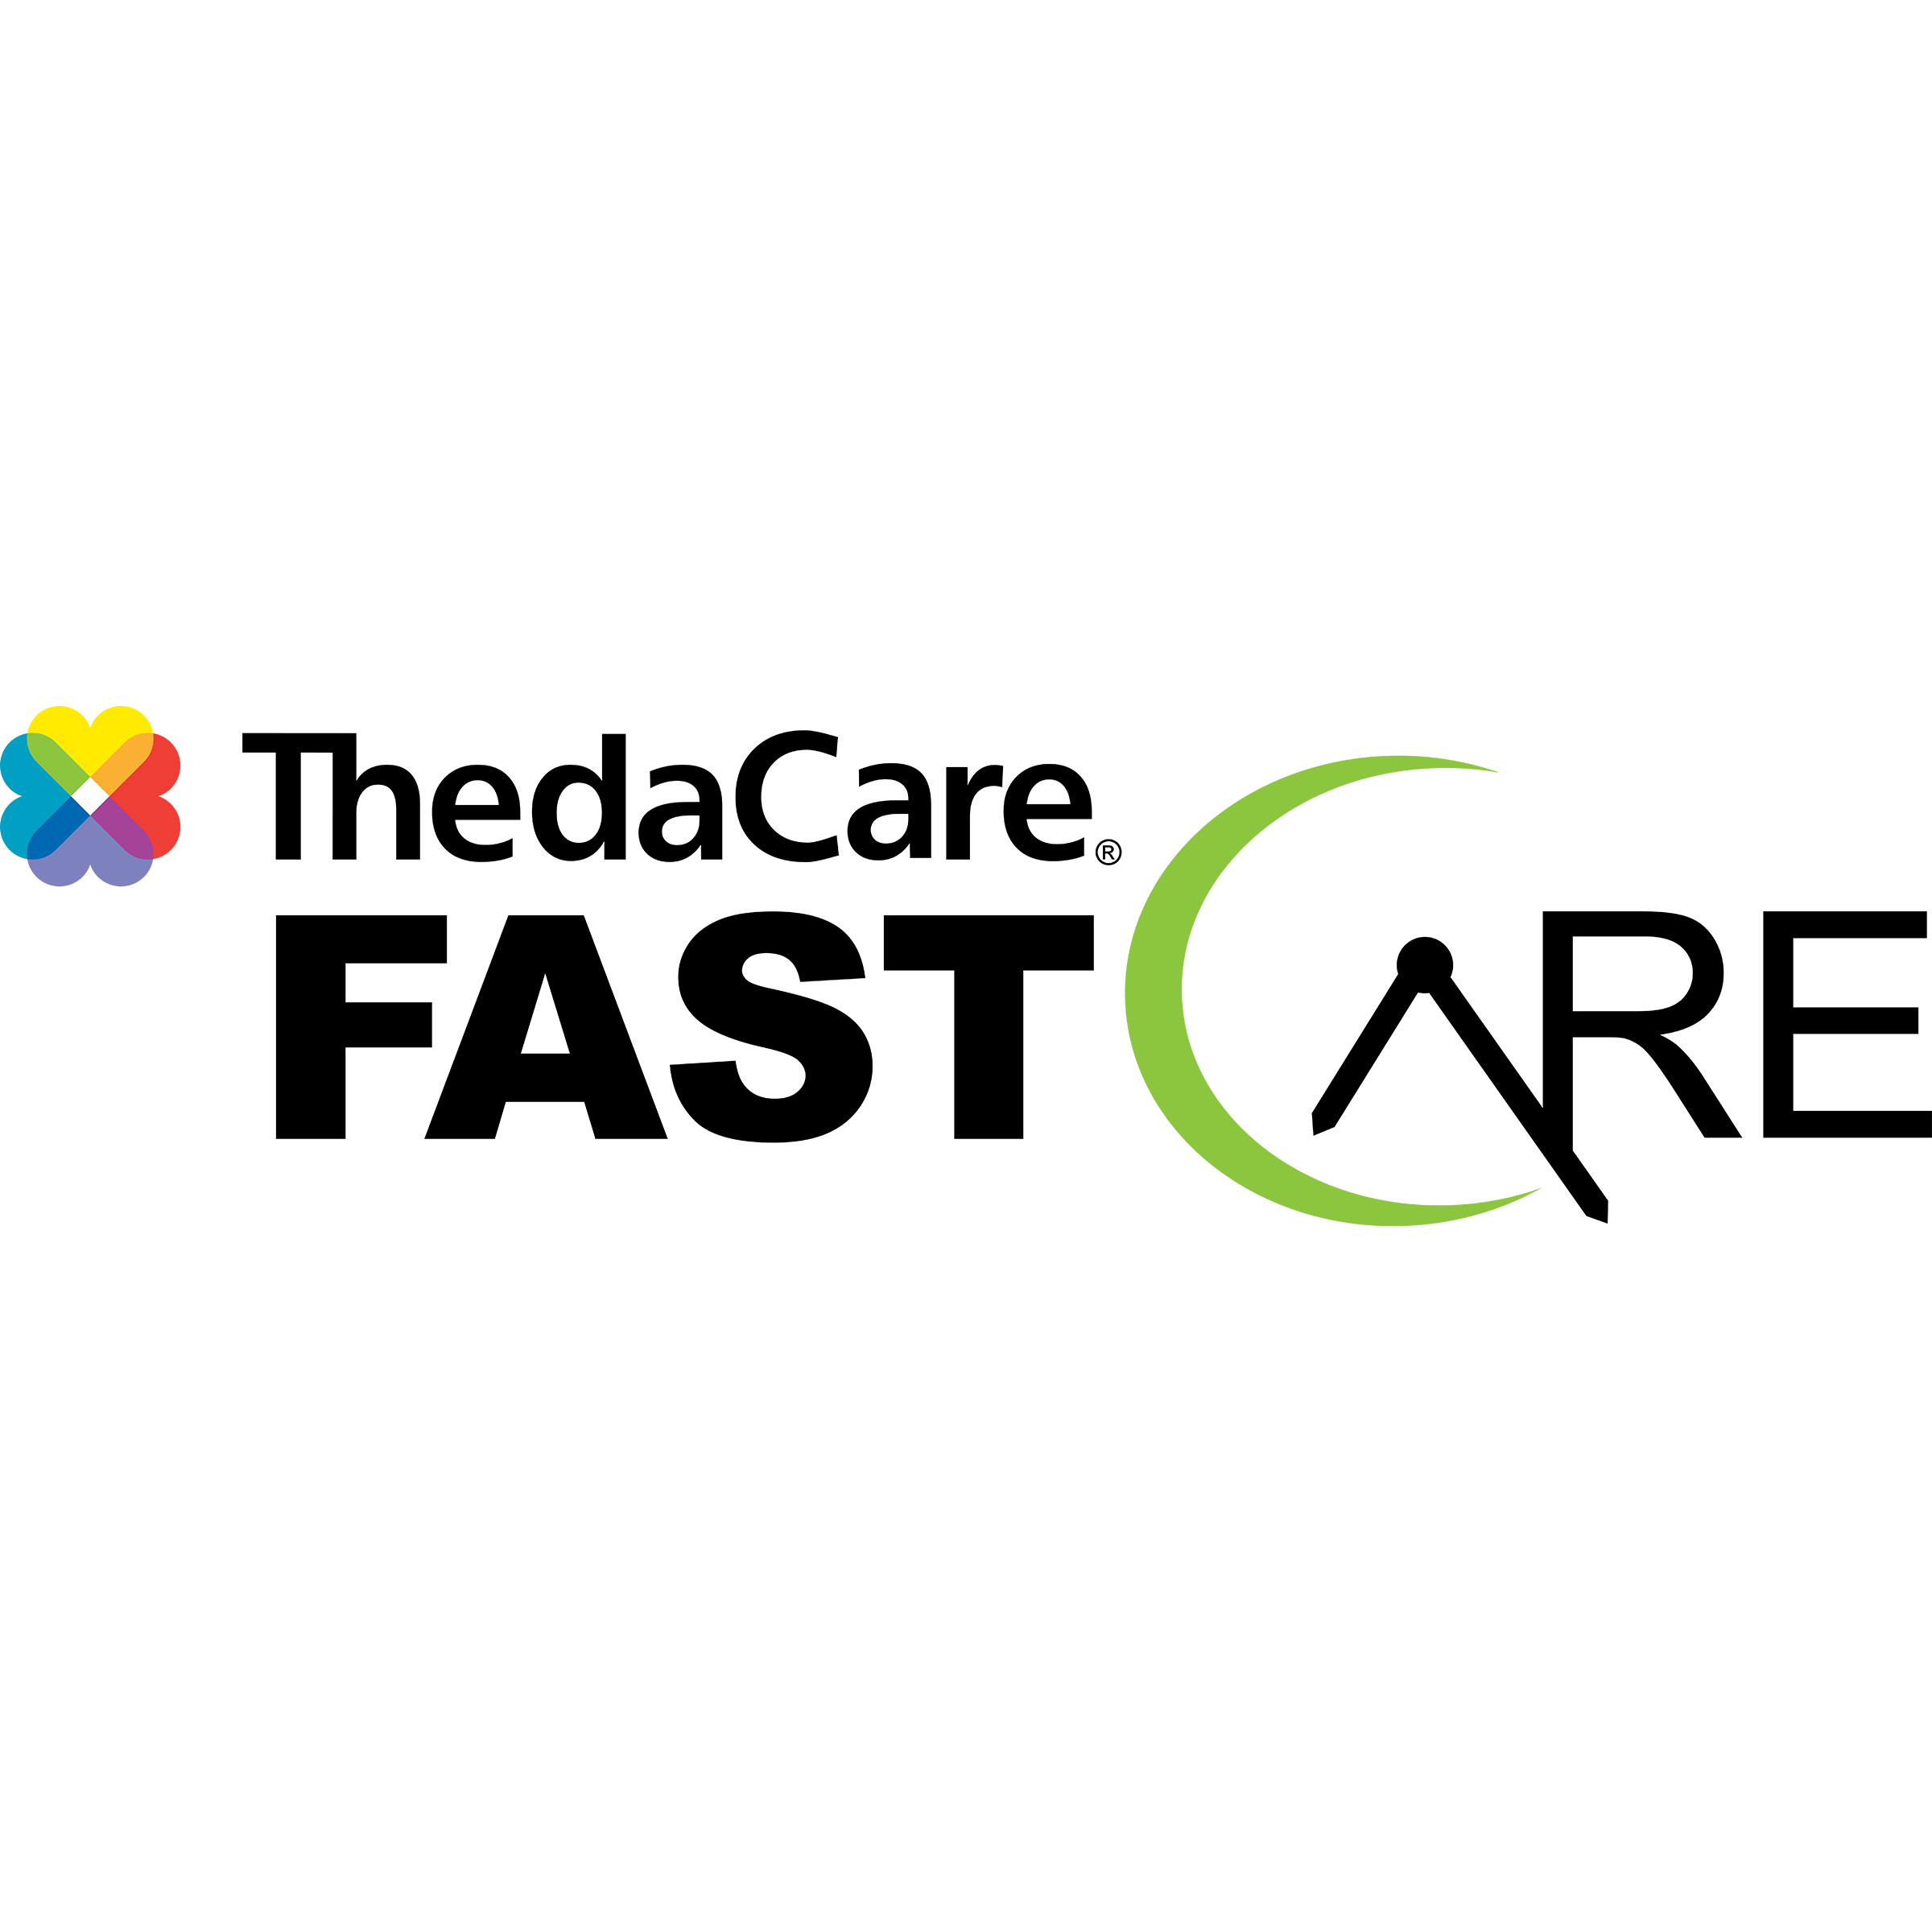 ThedaCare FastCare-Darboy - CLOSED - Appleton, WI 54915 - (866)455-8111 | ShowMeLocal.com